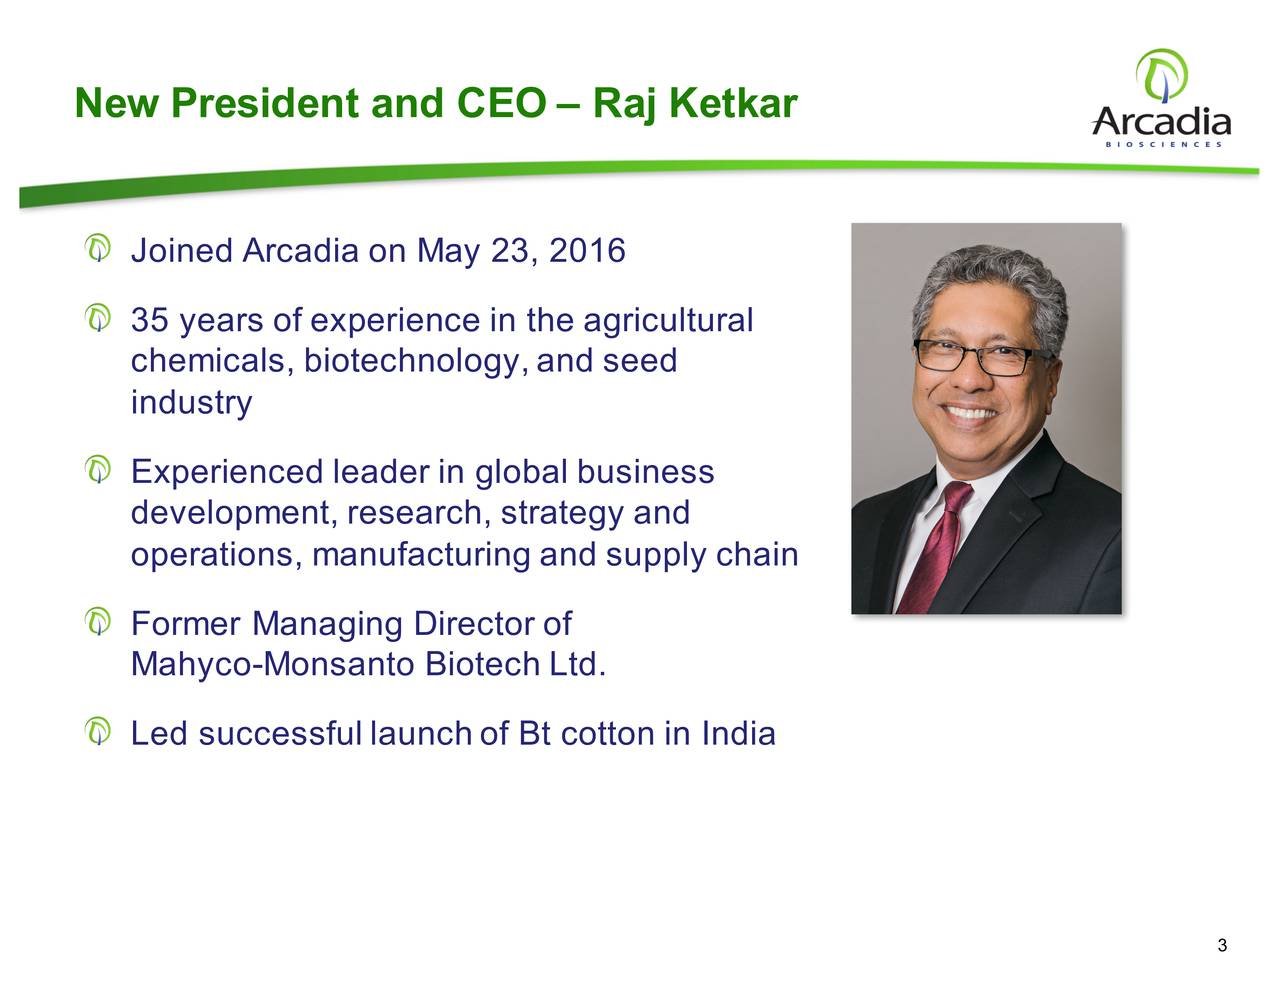 Joined Arcadia  on May 23, 2016 35 years of experience in  the agricultural chemicals, biotechnology, and seed industry Experienced leader in global business development, research, strategy and operations, manufacturinga  nd supply chain Former Managing Director of Mahyco-Monsanto  Biotech Ltd. Led successful launch  of Bt cotton in India 3